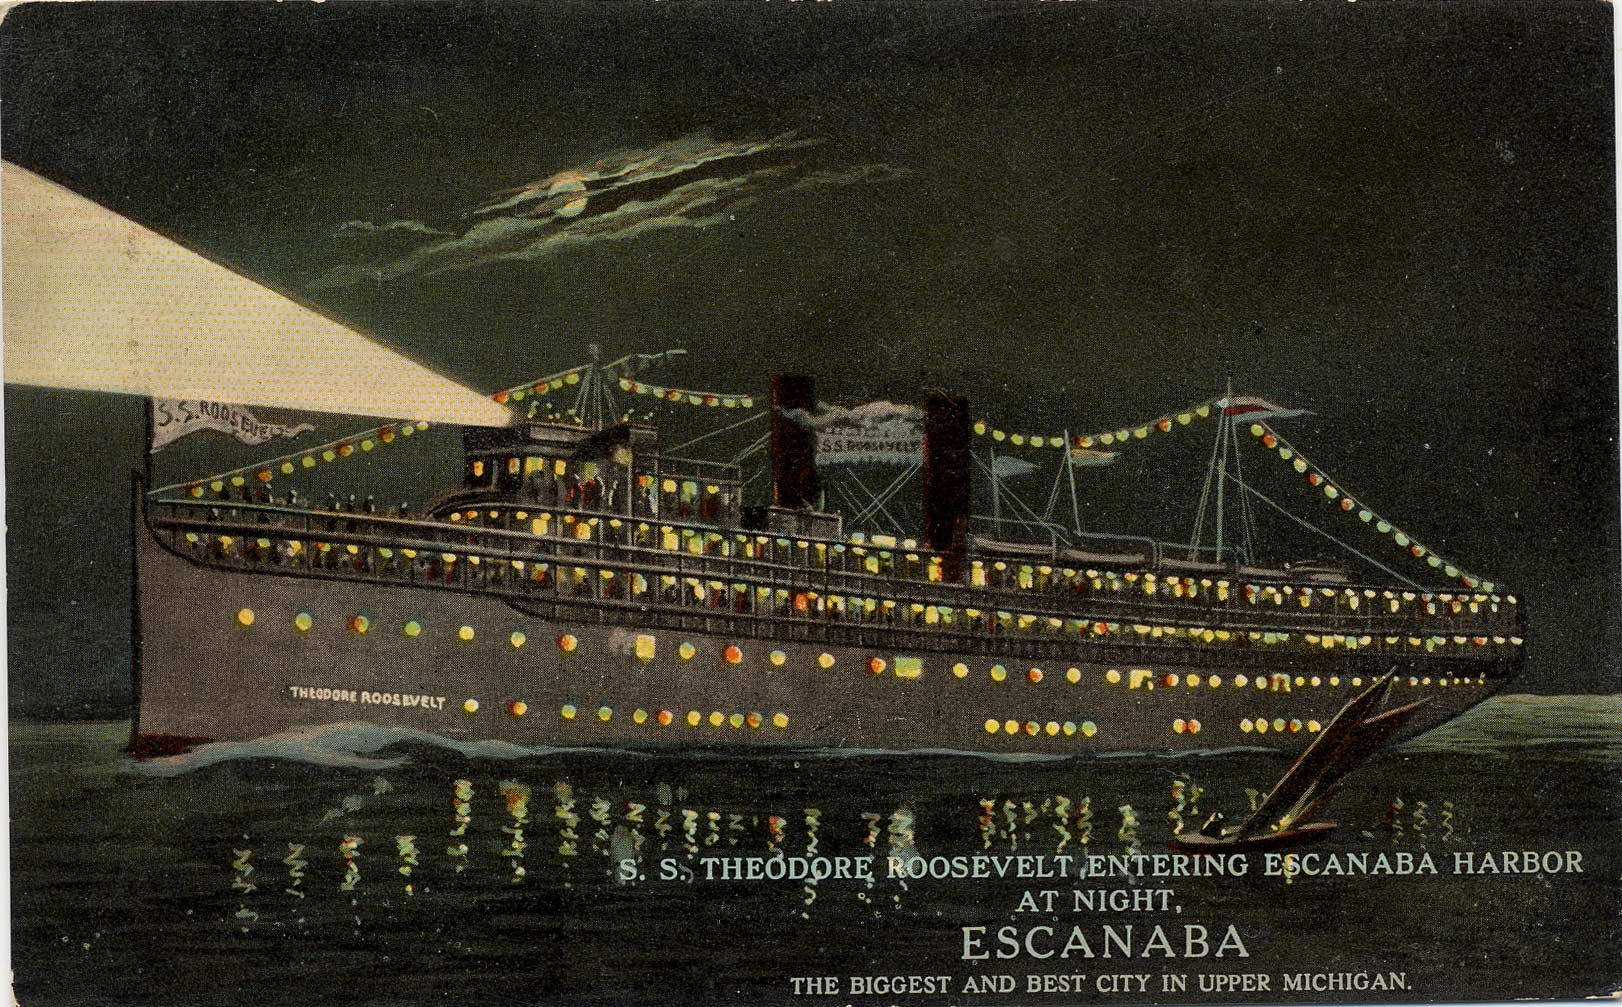 S. S. Theodore Roosevelt entering Escanaba Harbor at night.